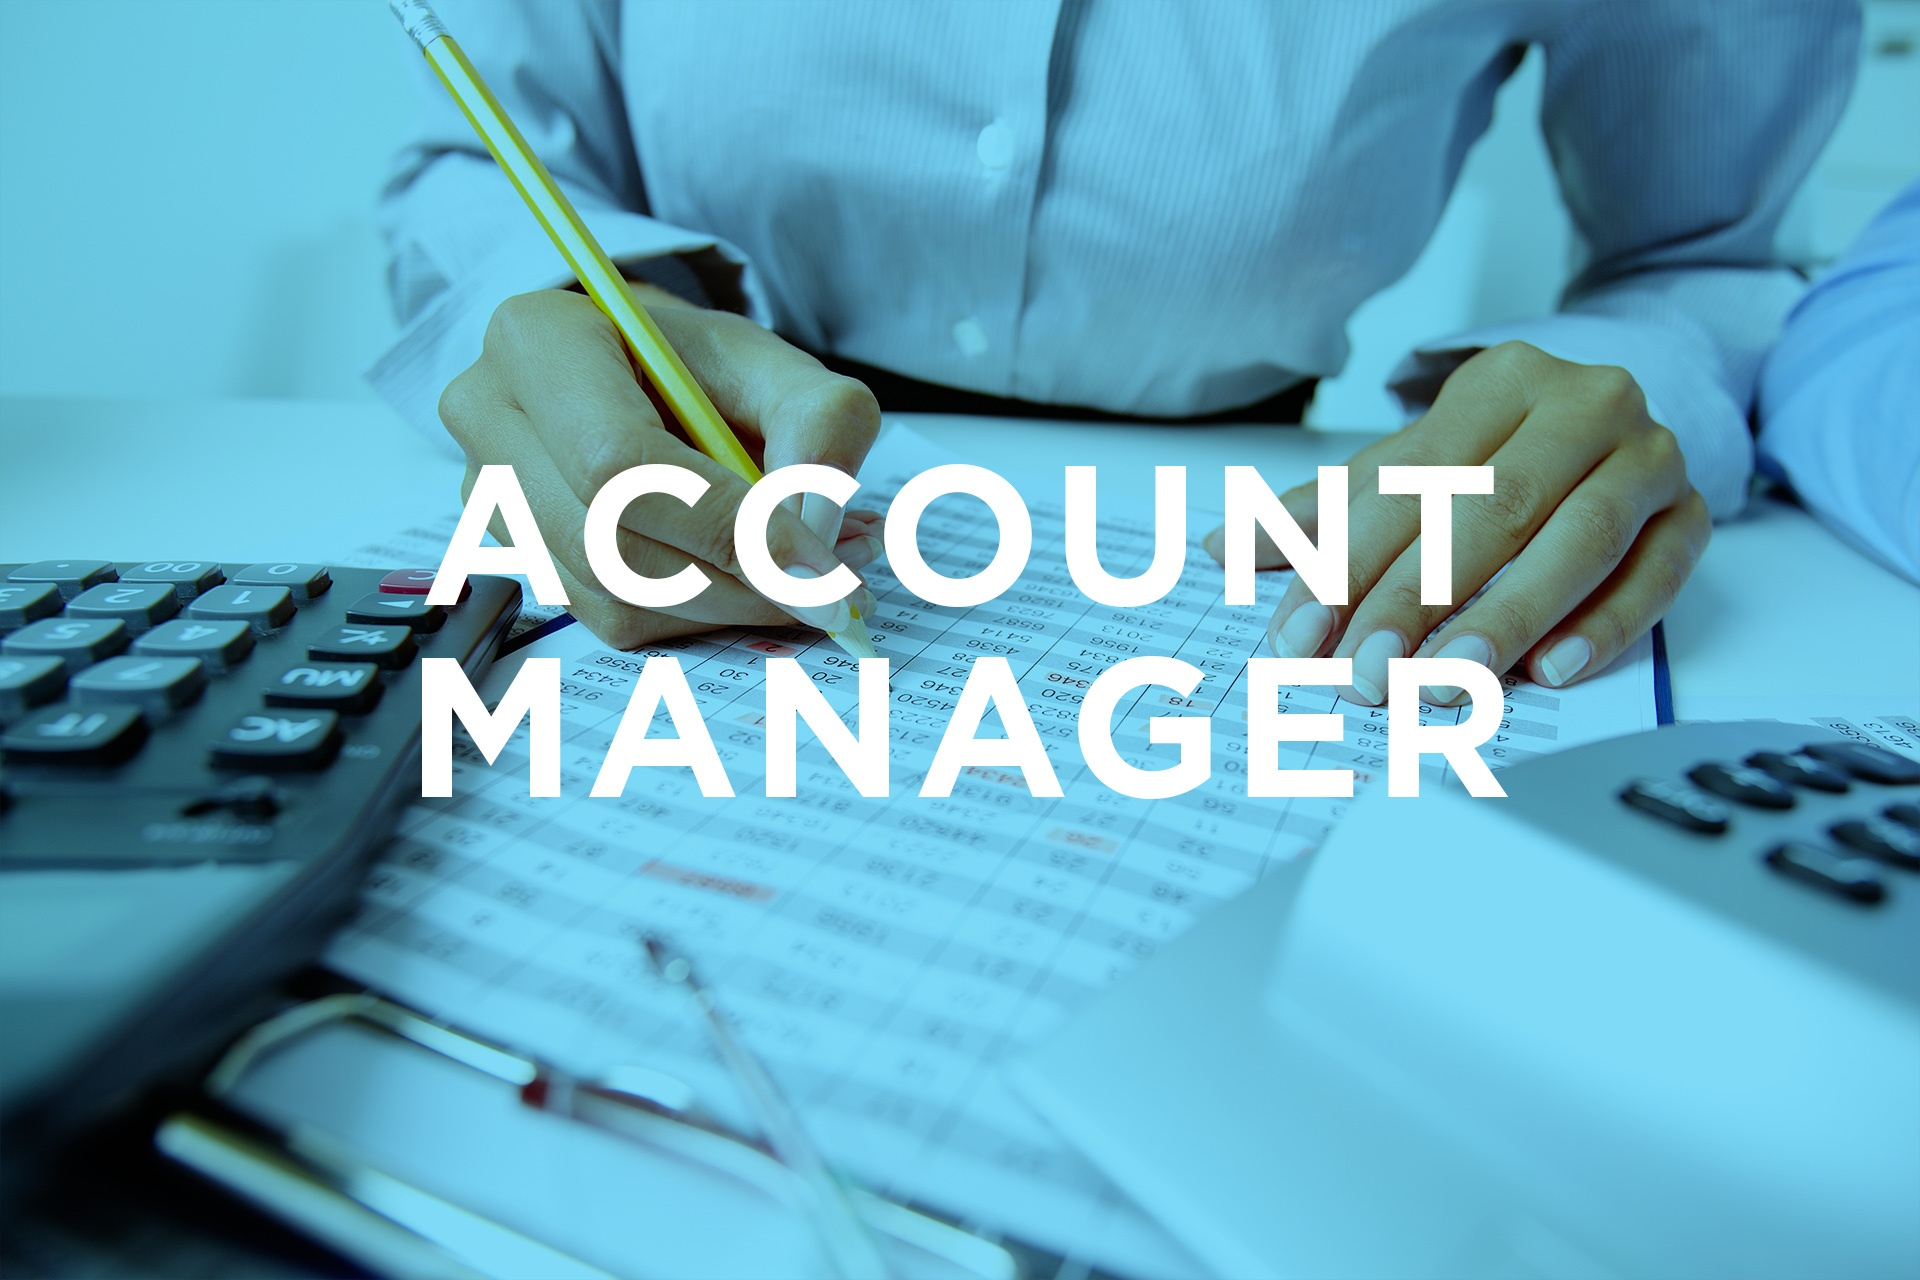 Account Manager, London